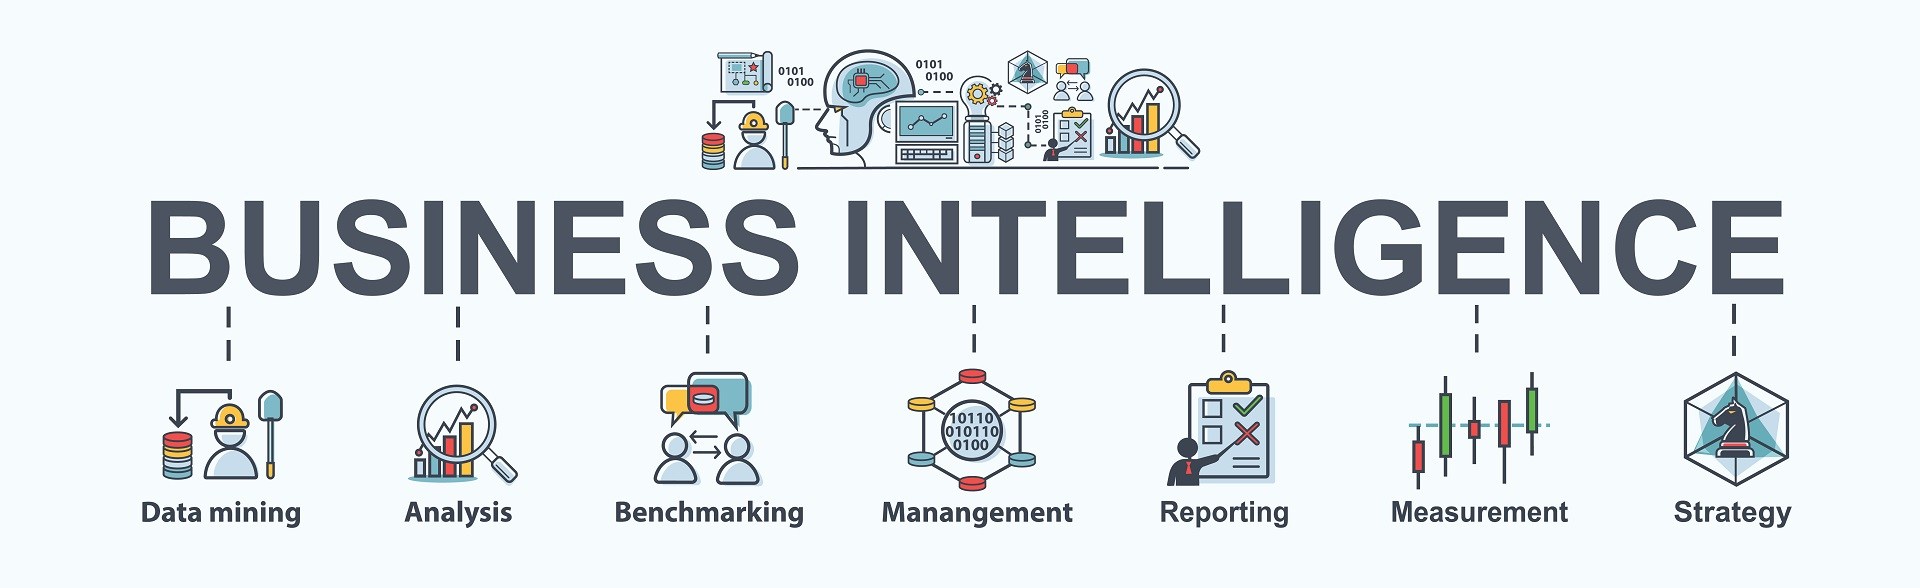 opsi report & scheduling business intelligence